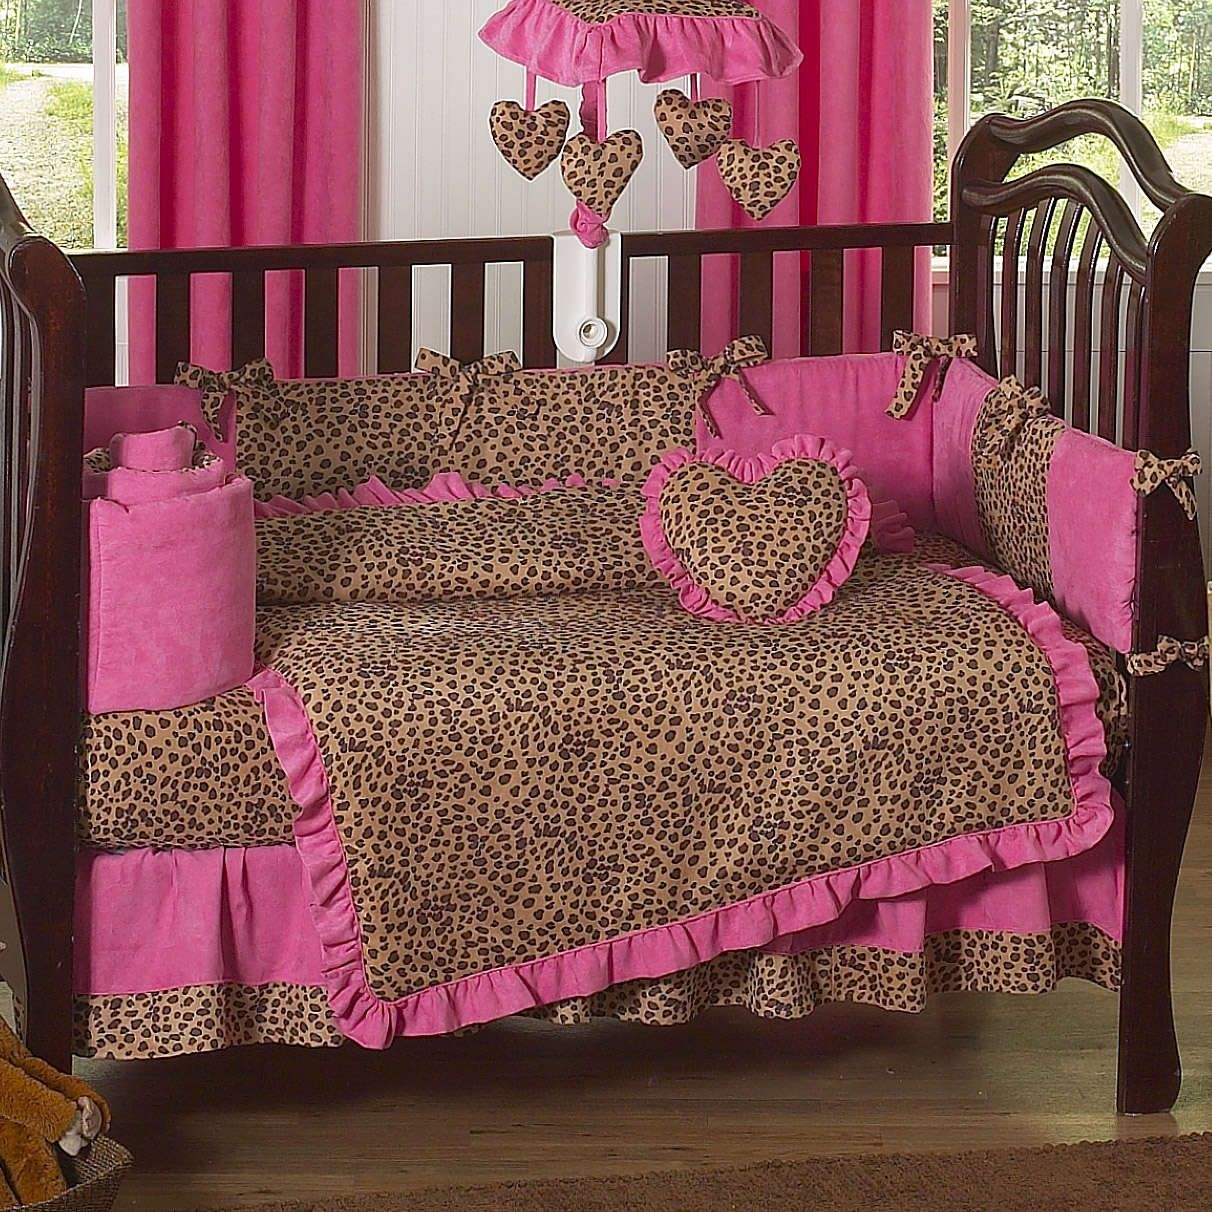 Leopard Baby Shower Cakes Cheetah Hot Pink And Leopard Print 9 Piece Crib Bedding Set